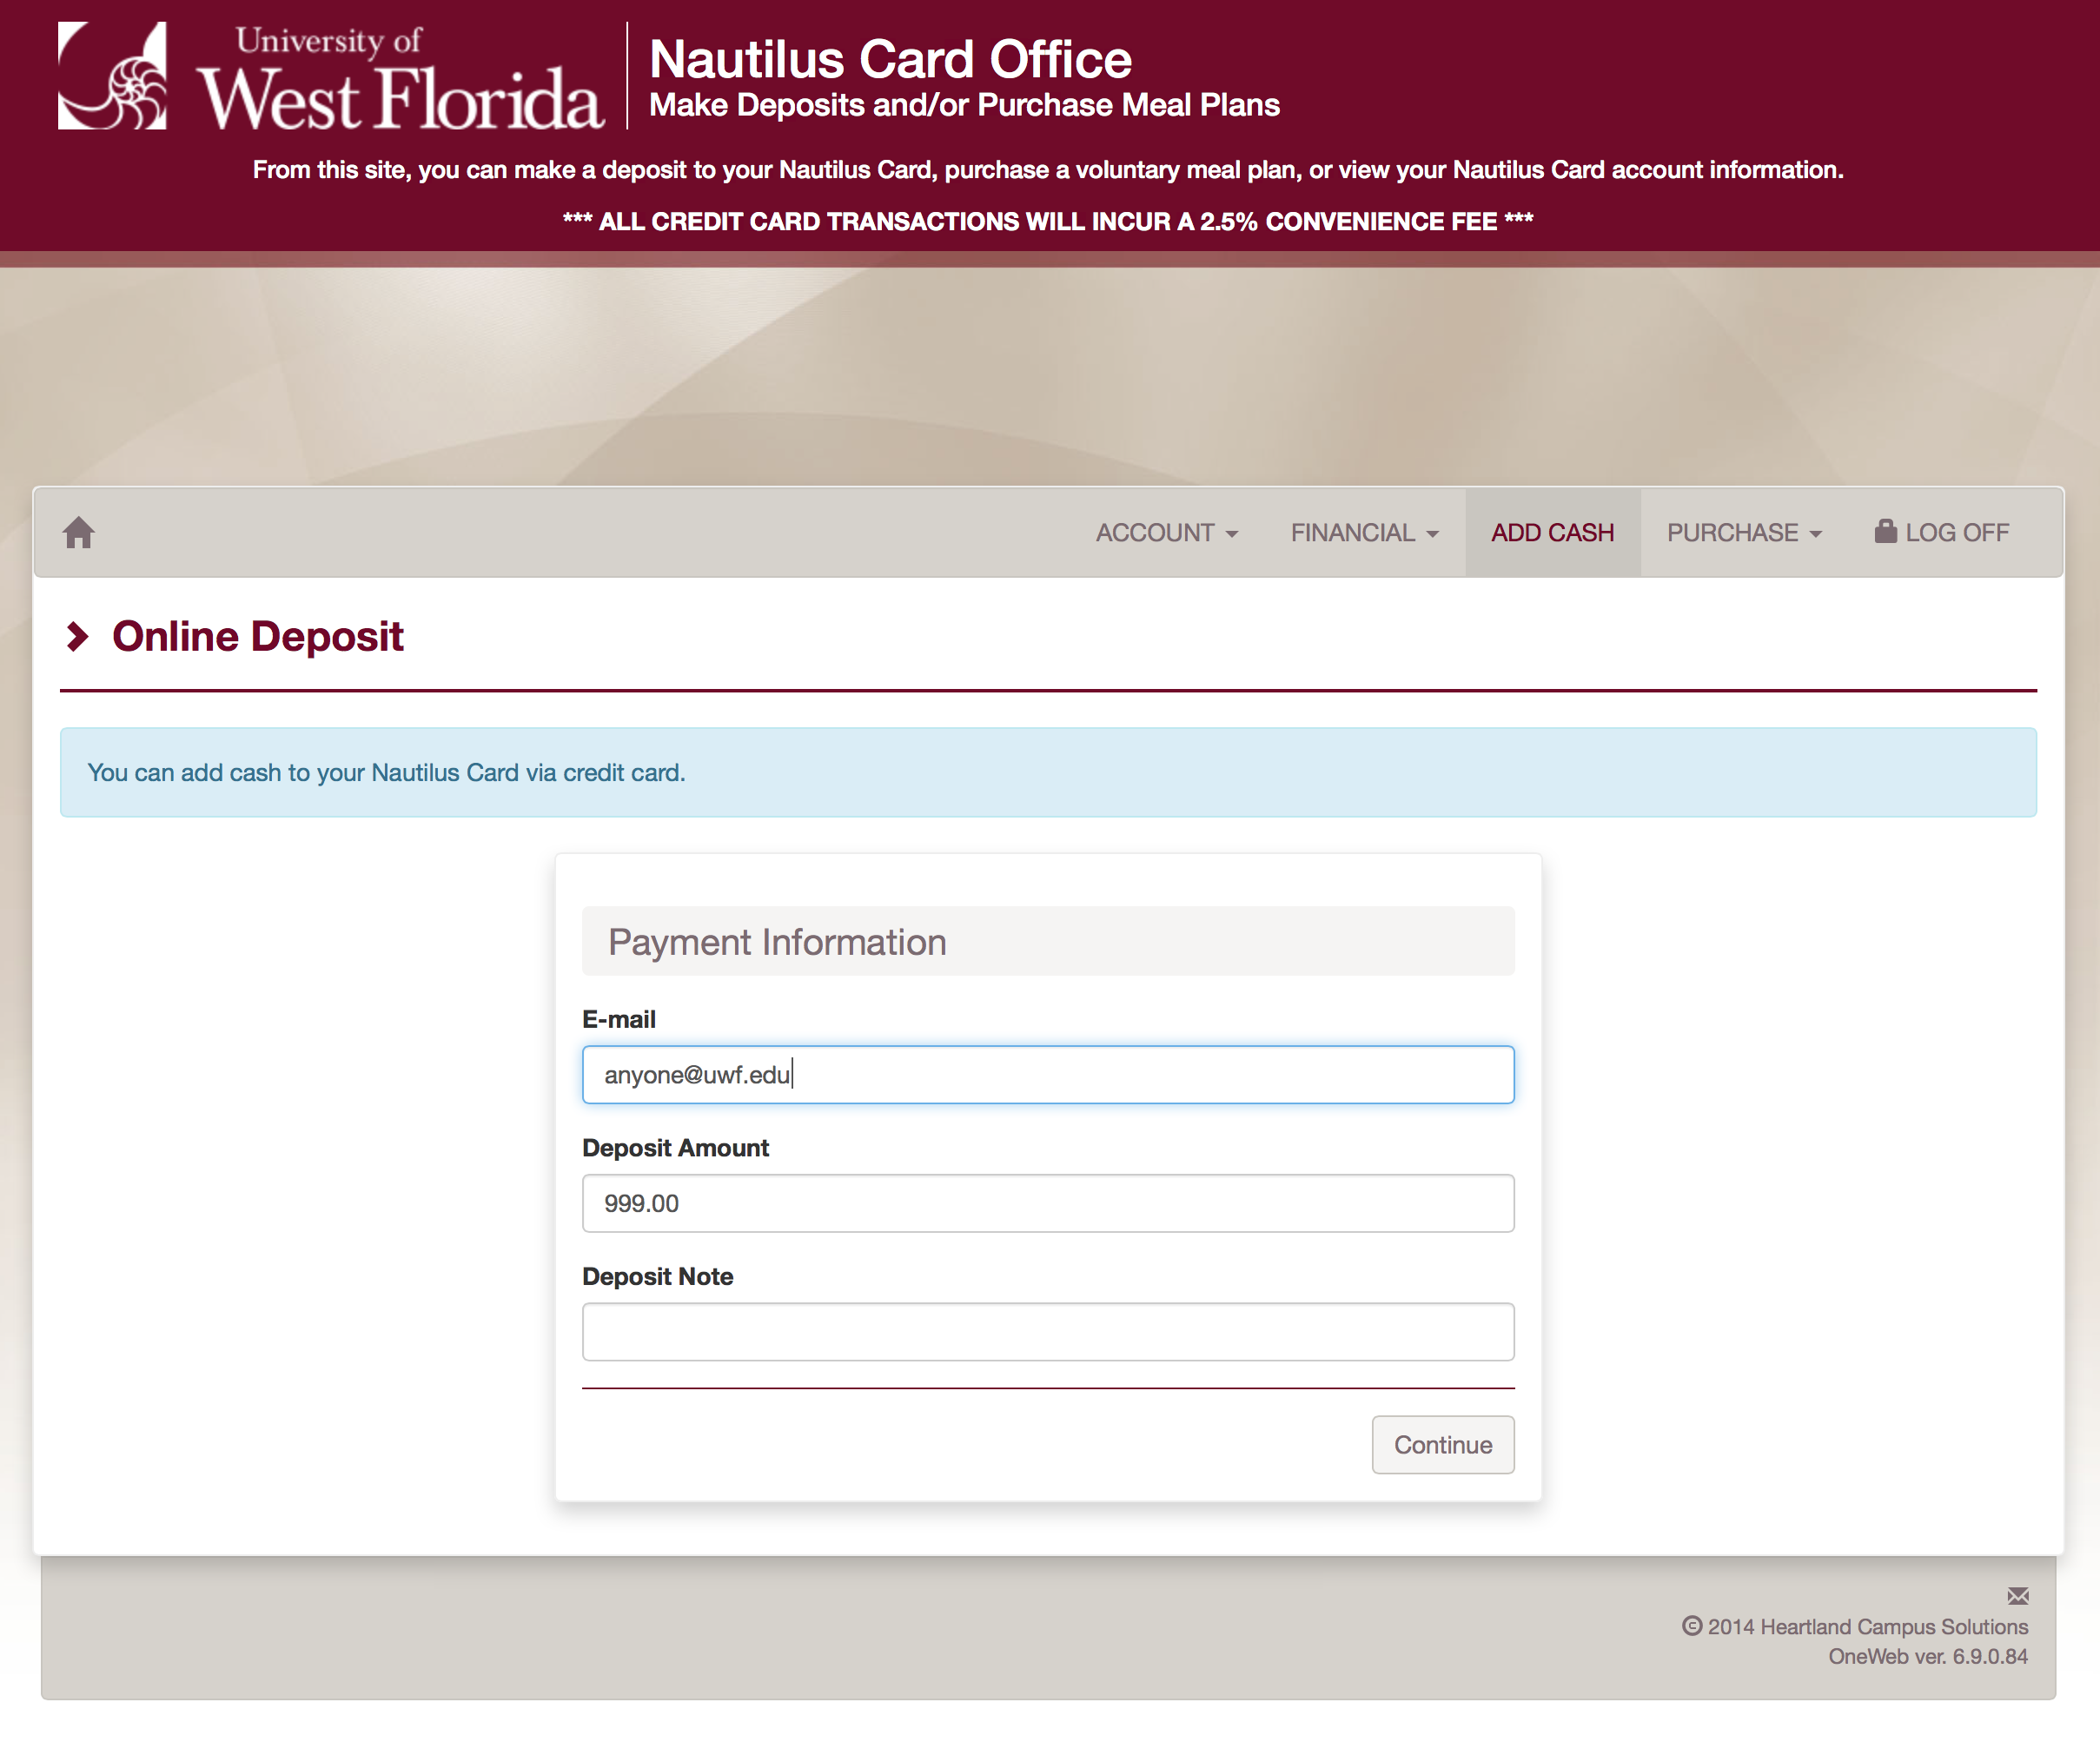 email, deposit amount, and deposit note fields